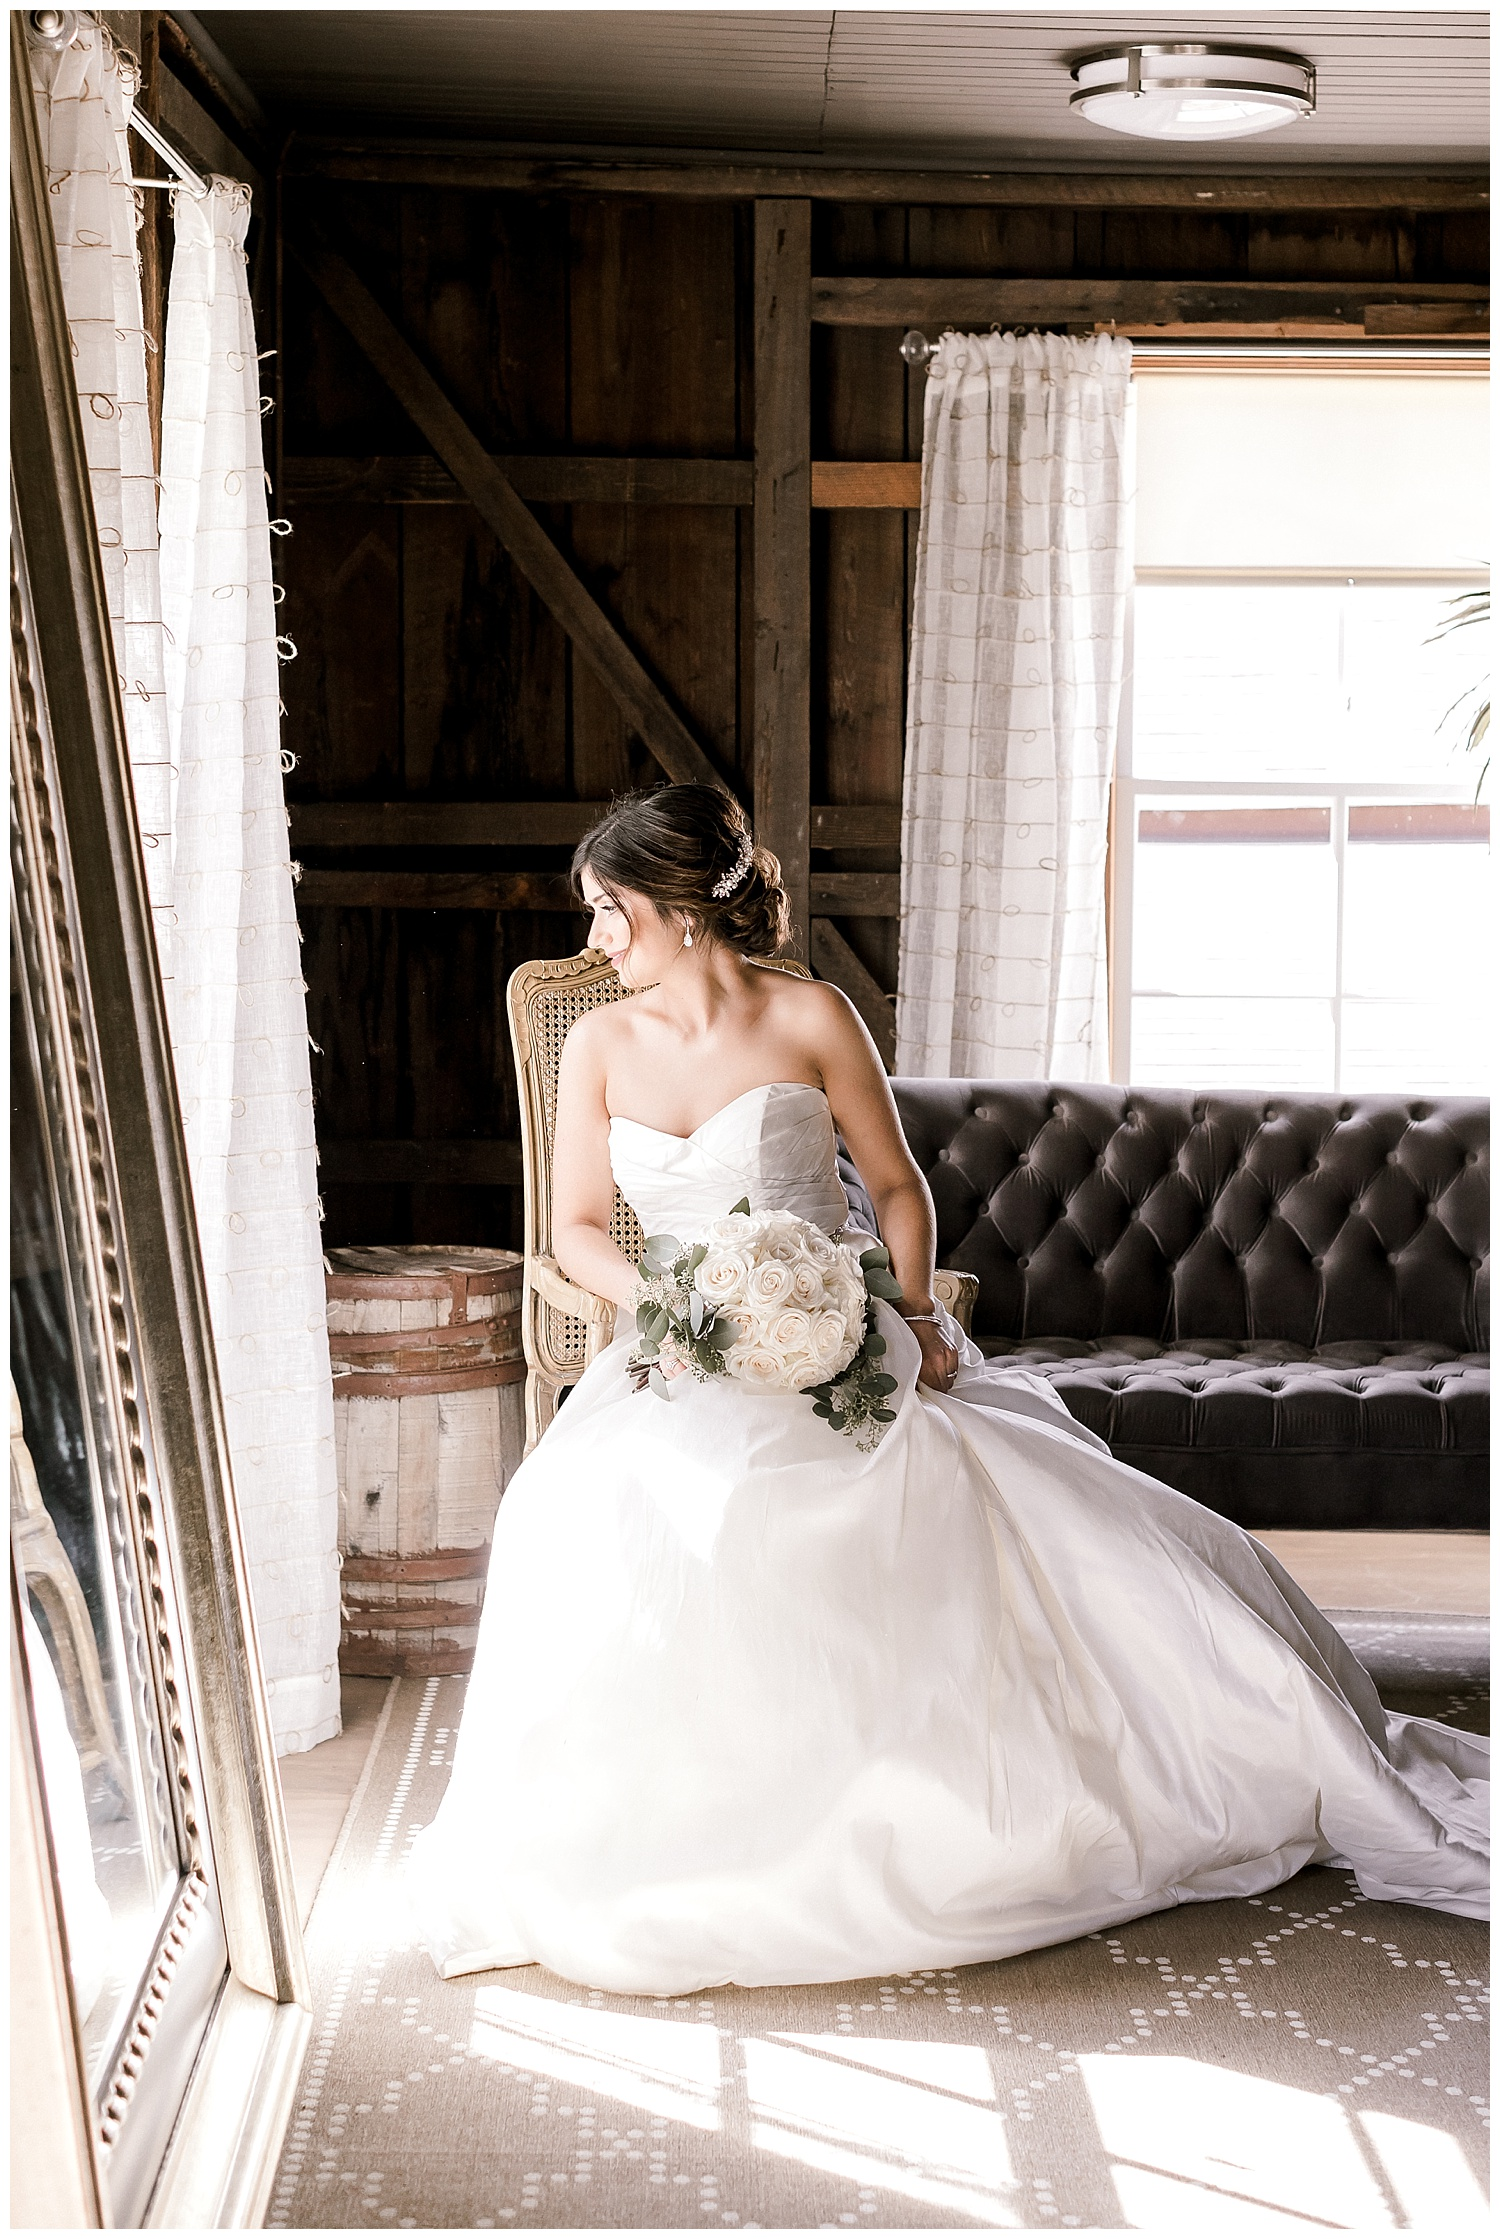 the-barns-cooper-molera-bride-in-suite-ags-photoart-epiphany-boutique.jpg